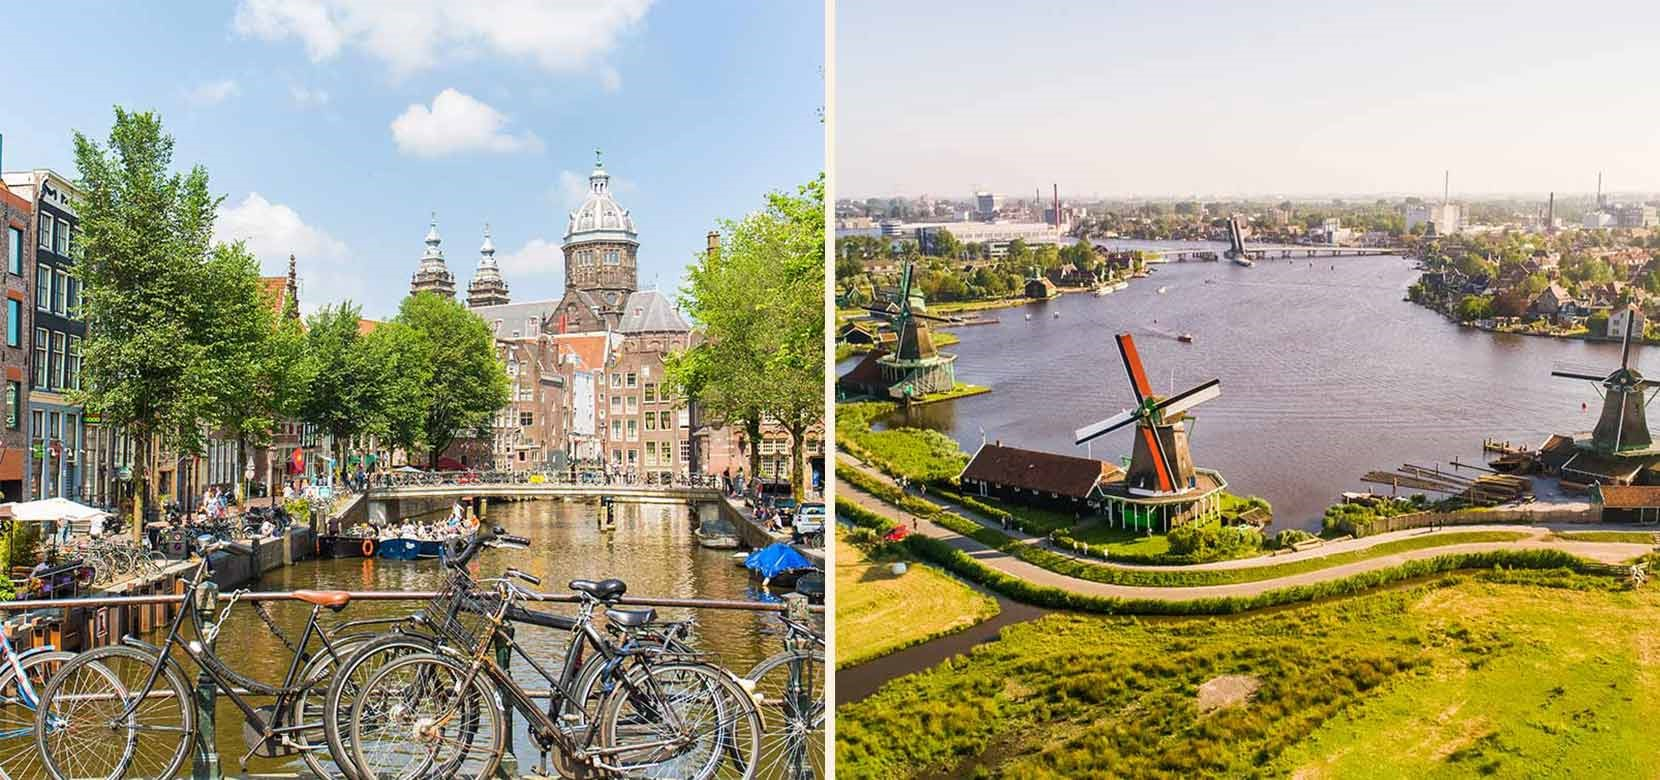 Amsterdam City Tour + Countryside & Windmills tour + Free Canal Cruise